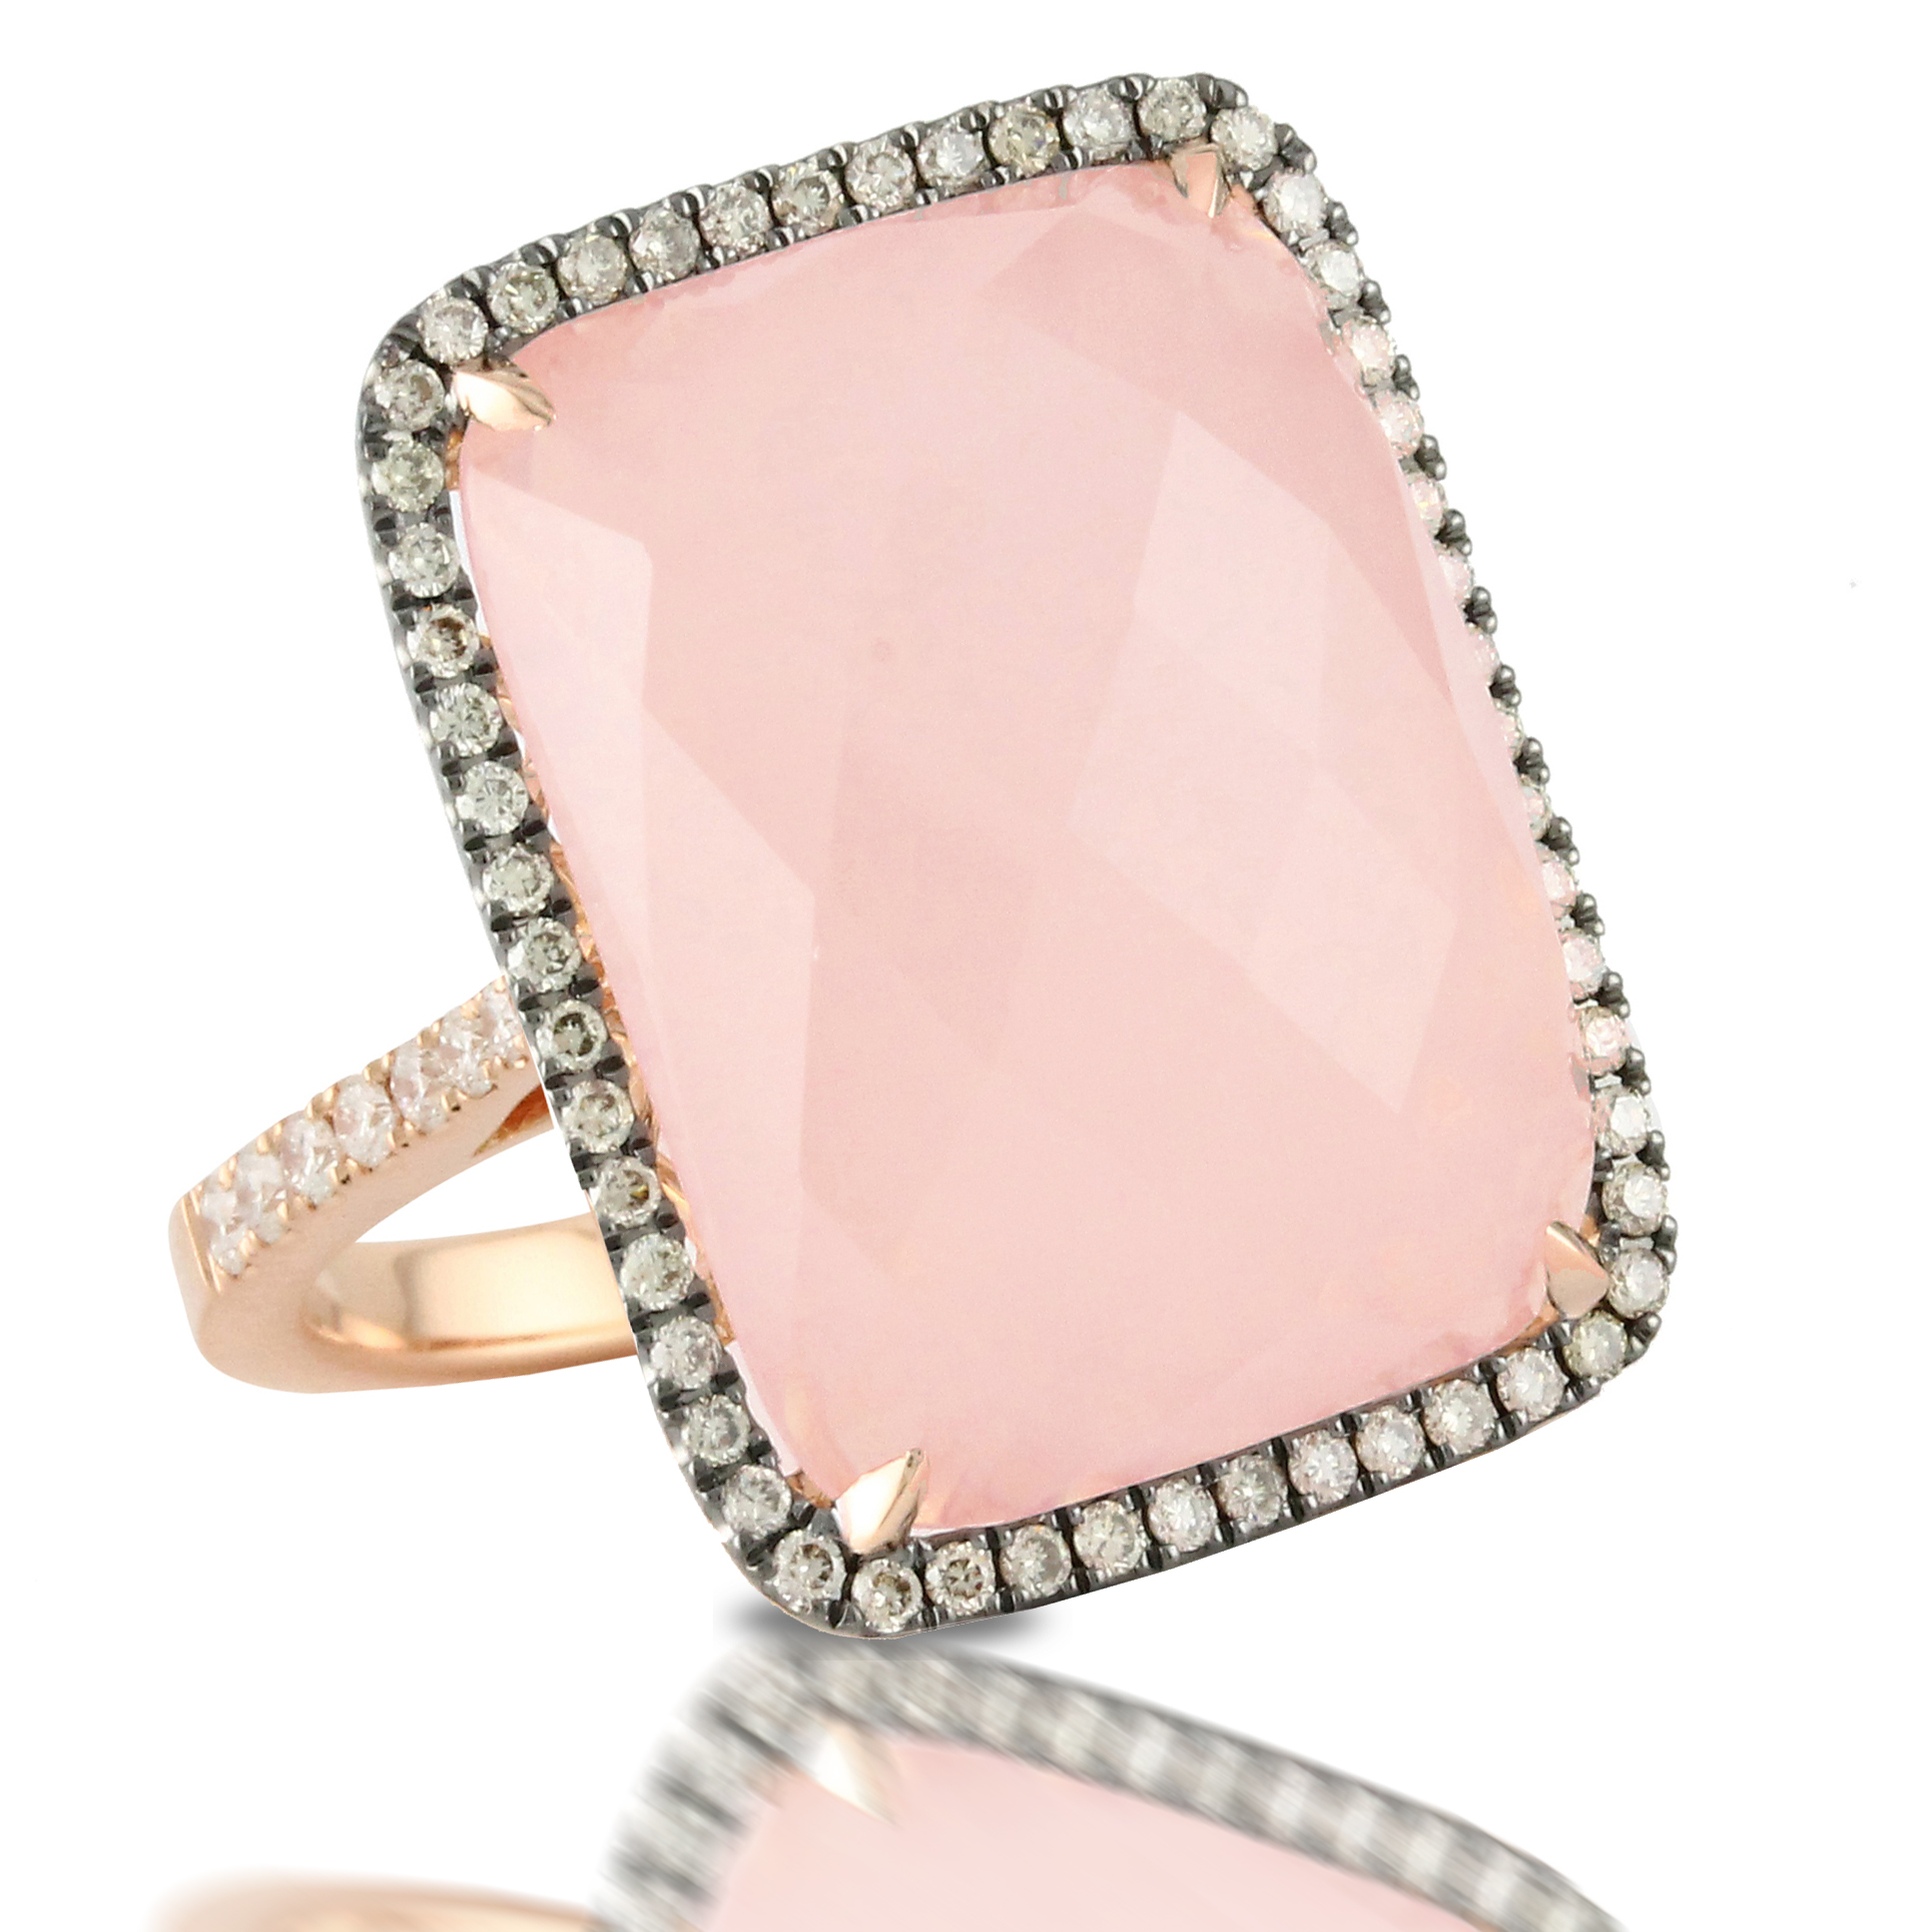 Colored Stone Rings Jewelry Design Gallery